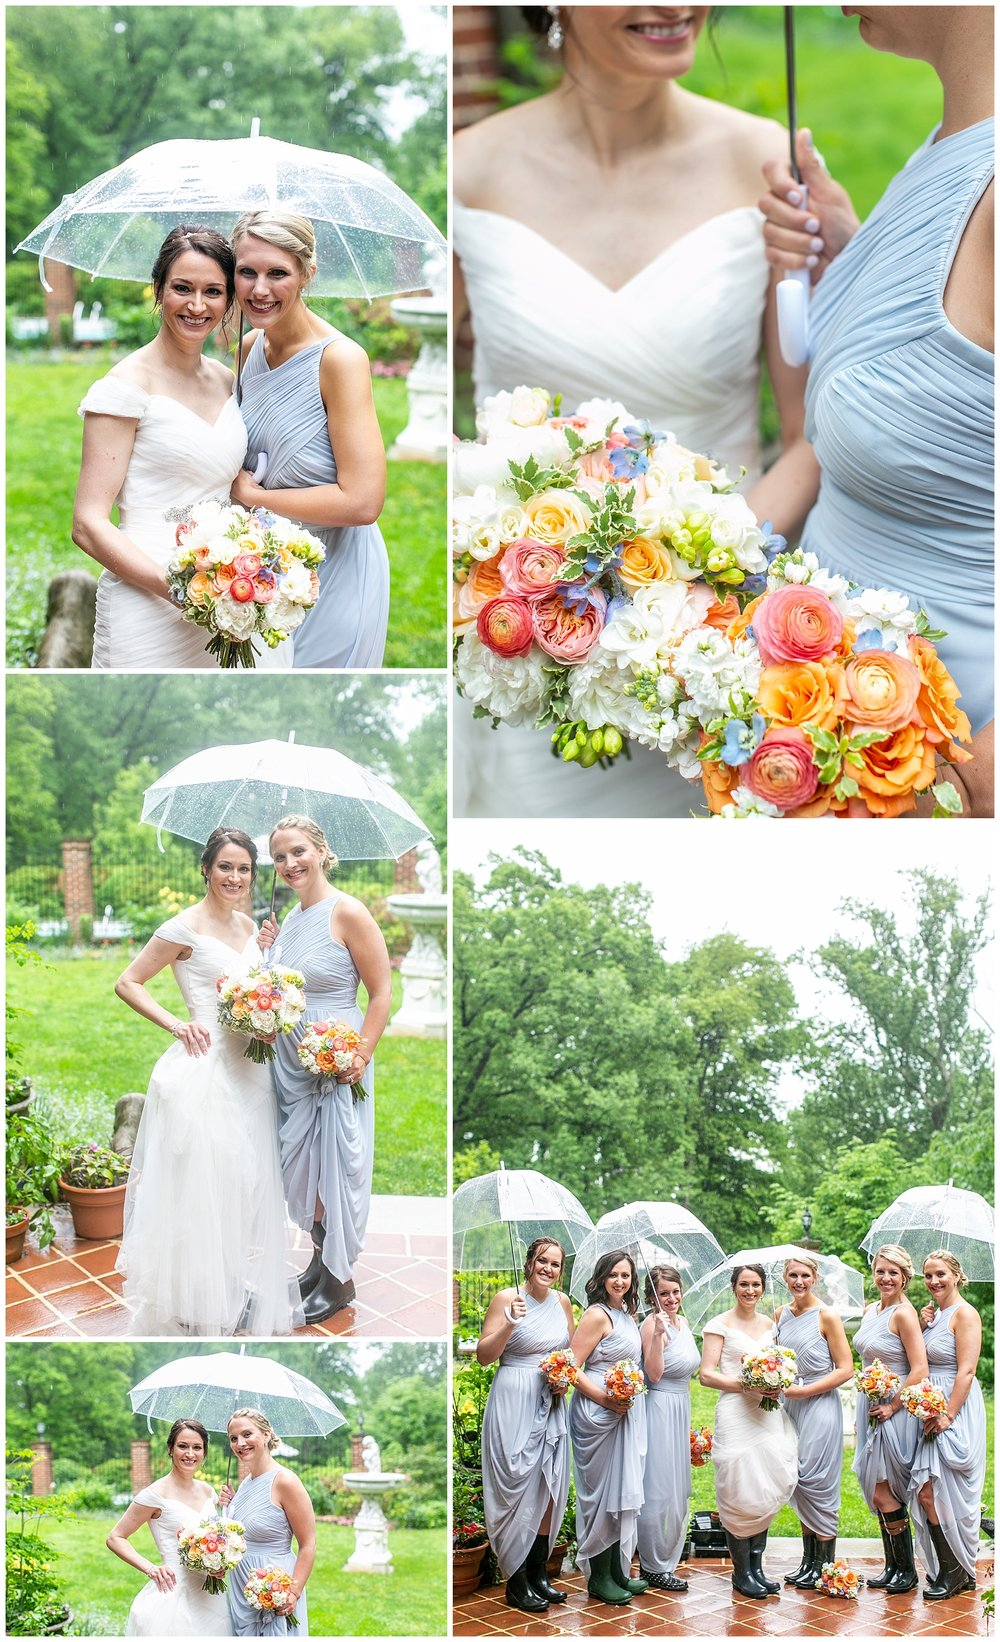 Ashley + Kevin Gramercy Mansion Rainy Day Baltimore Wedding Living Radiant Photography photos_0024.jpg